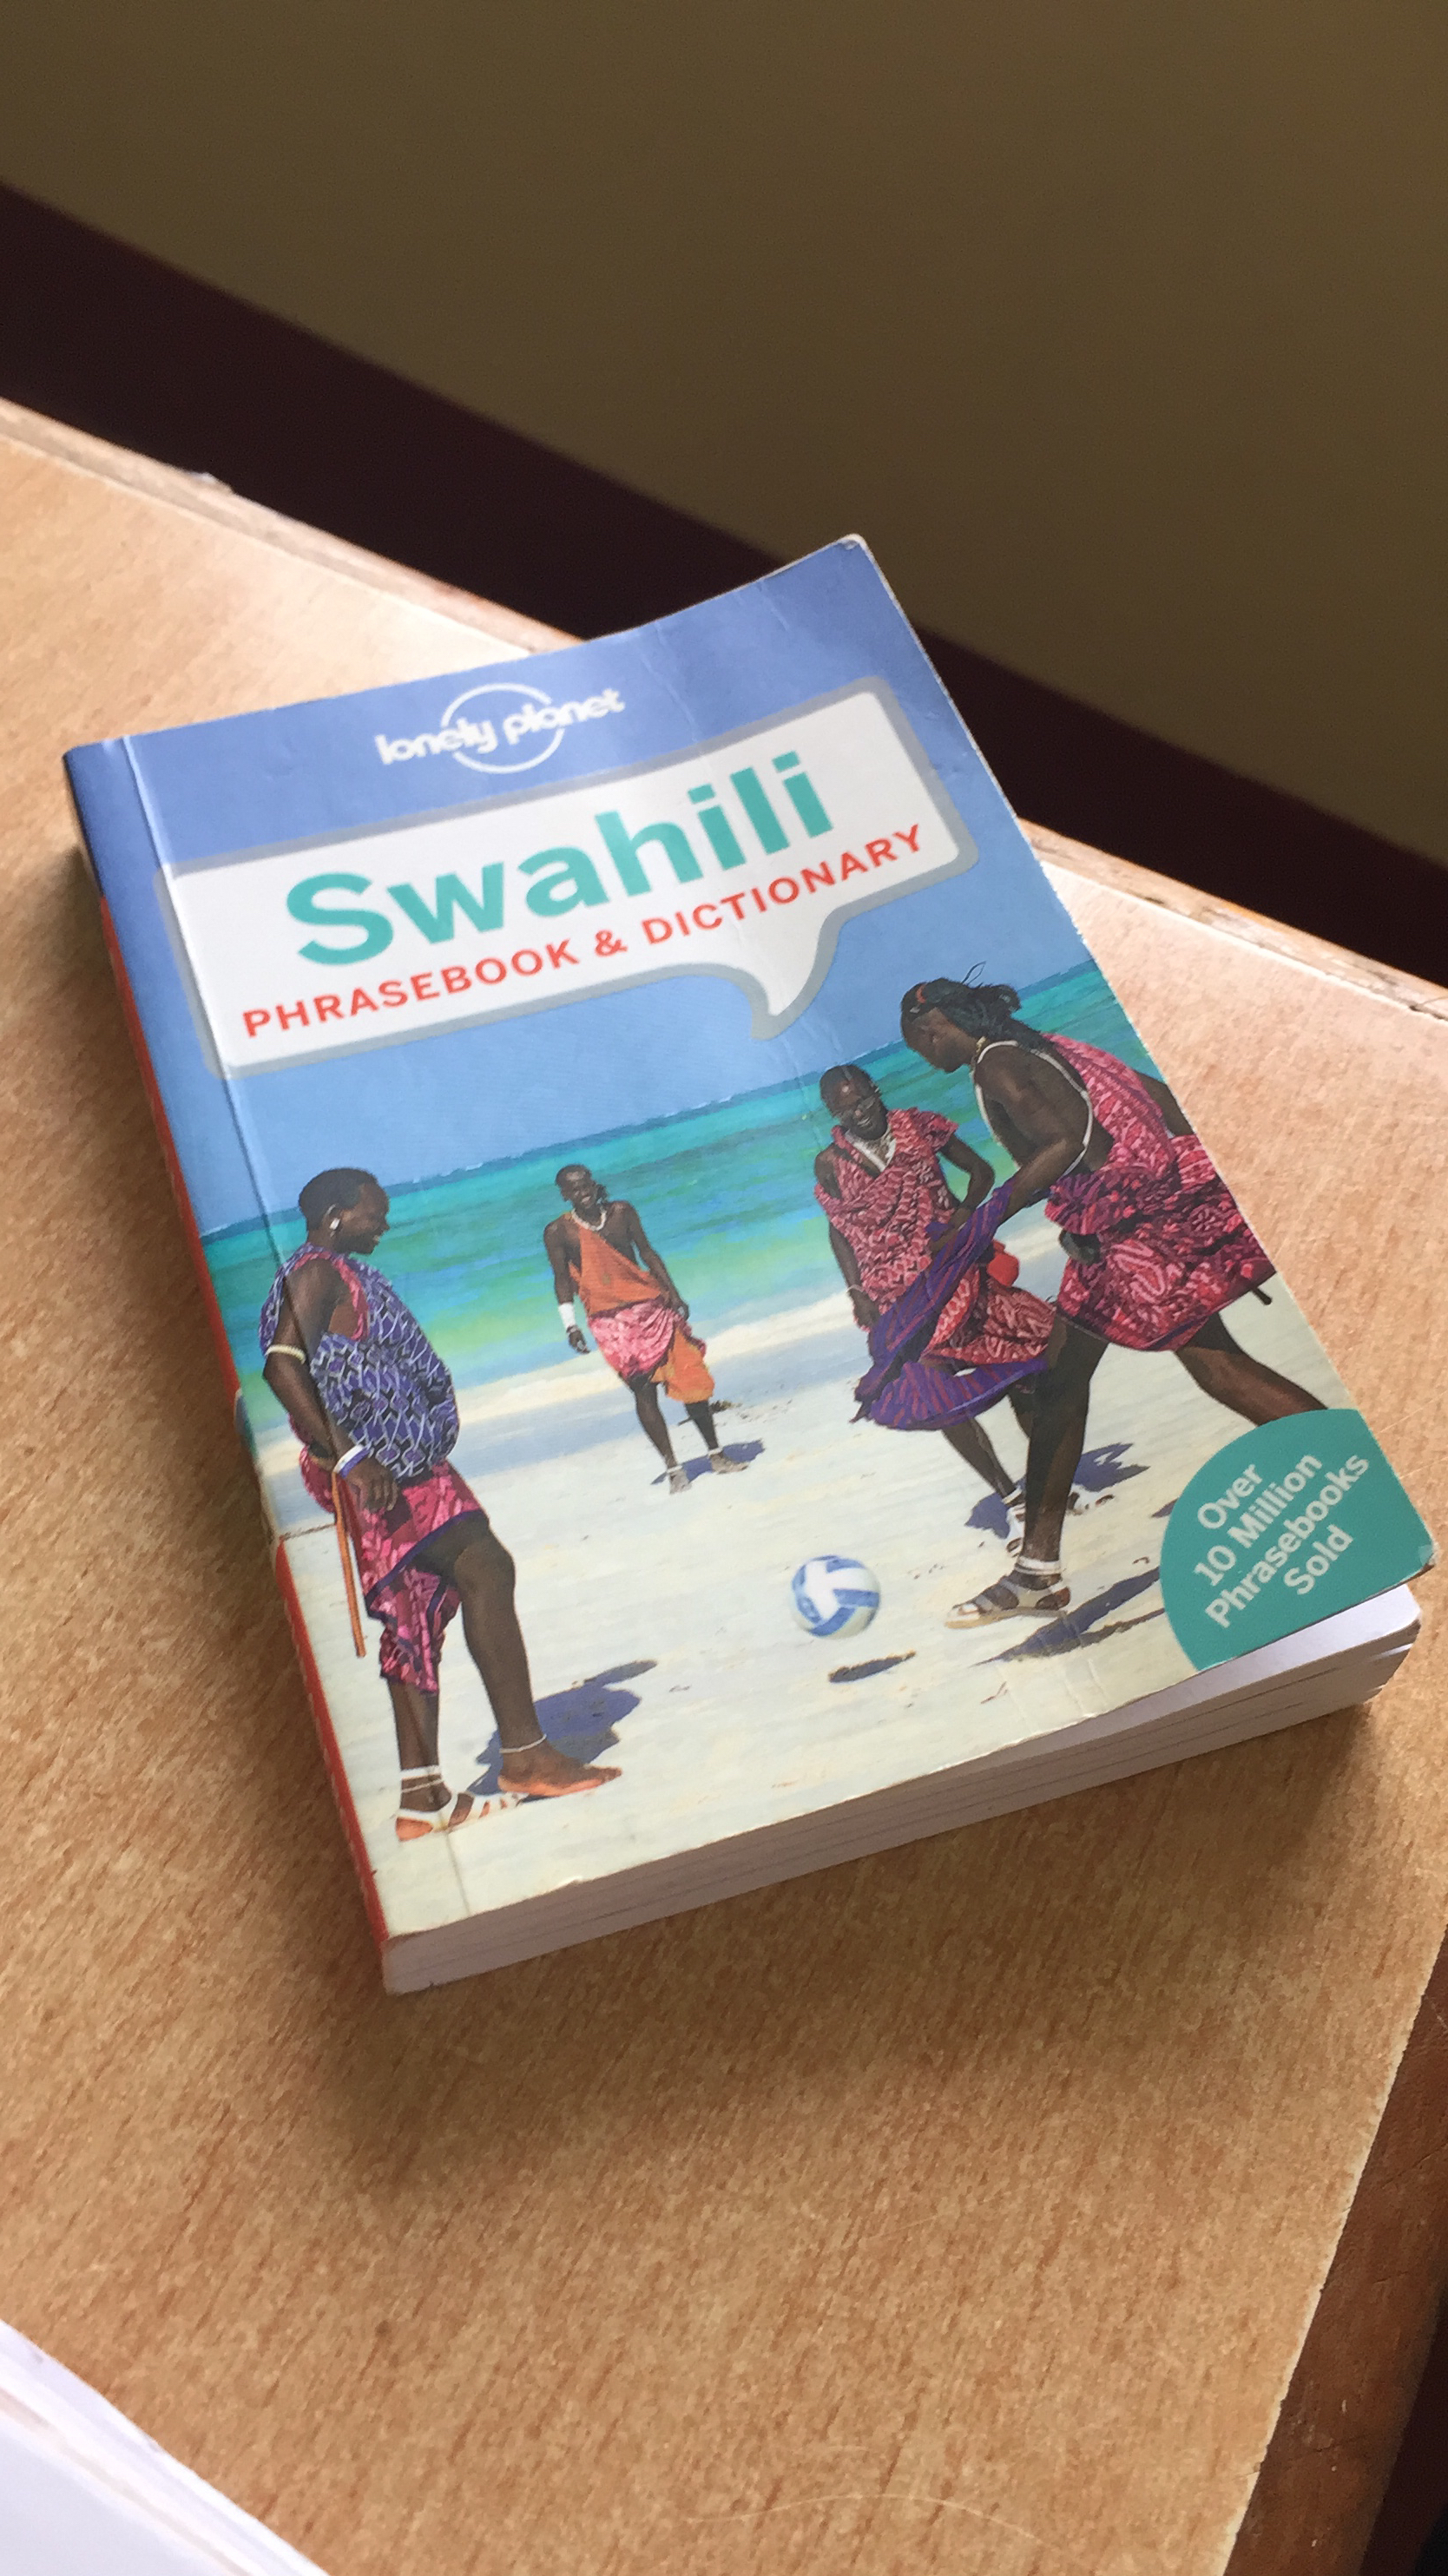 We have a goal of learning a little (kidogo) Swahili each day. We often do this in the evening.